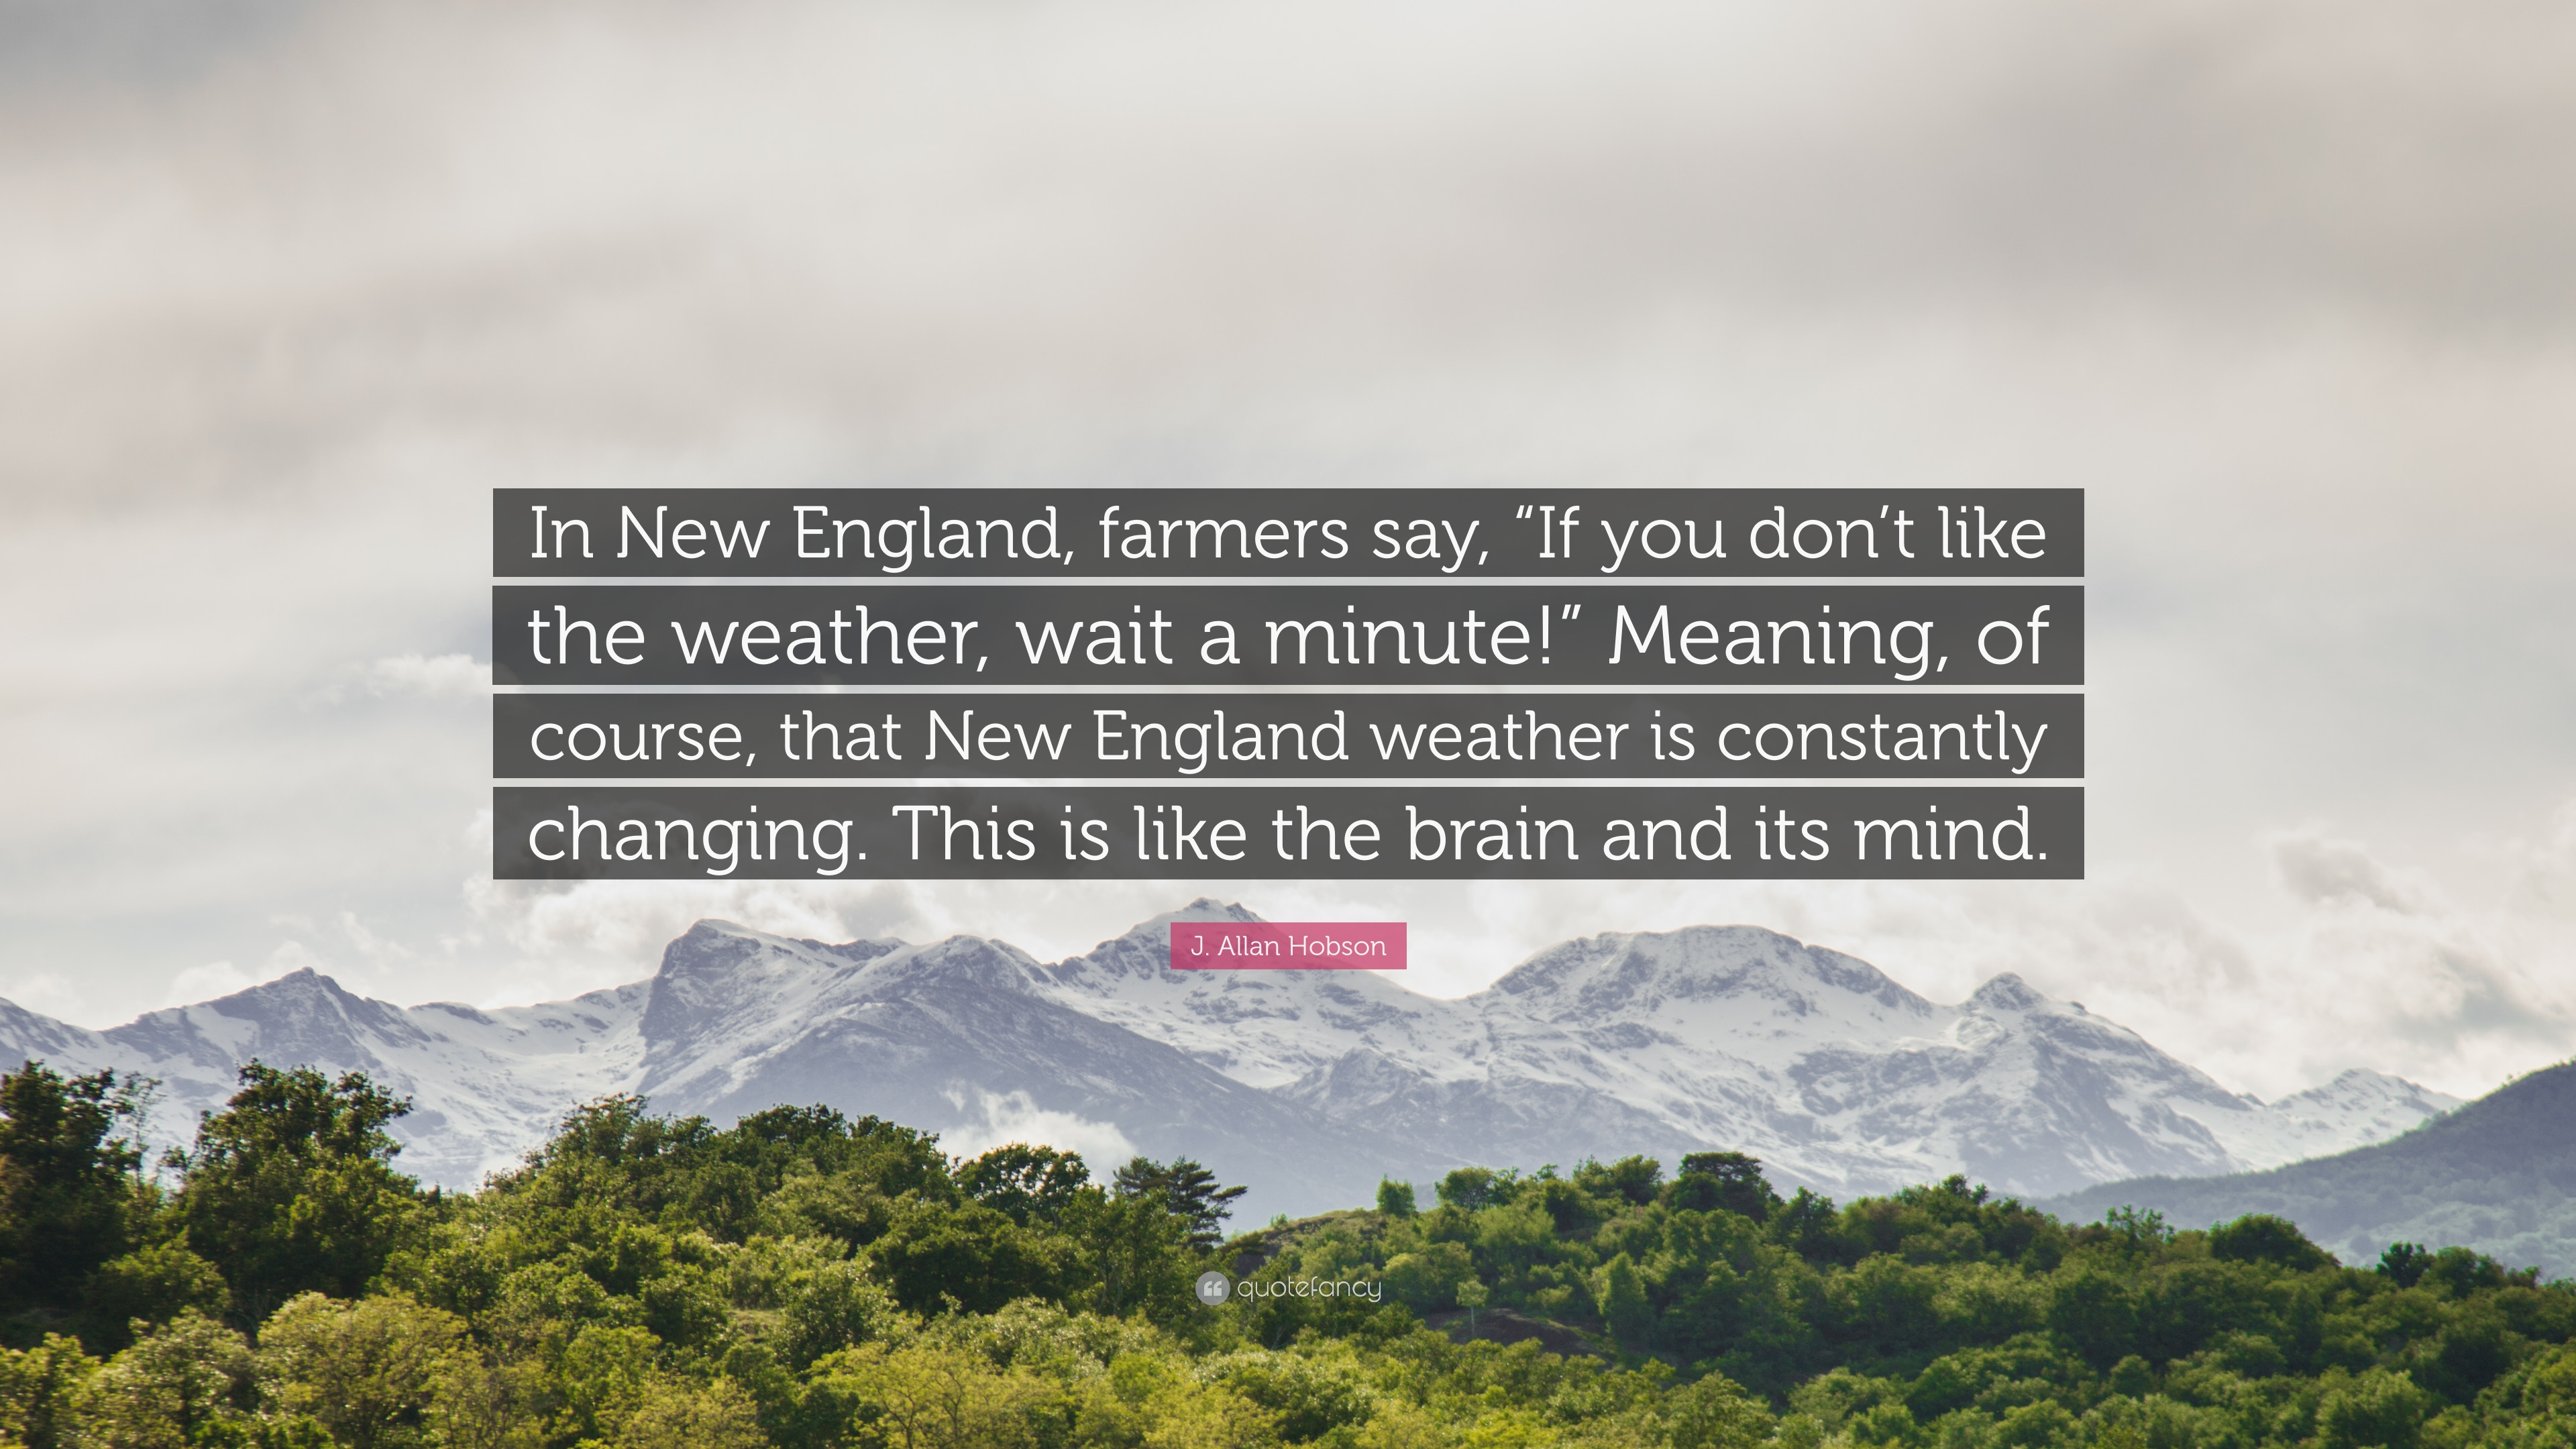 j allan hobson quote in new england farmers say if you don t